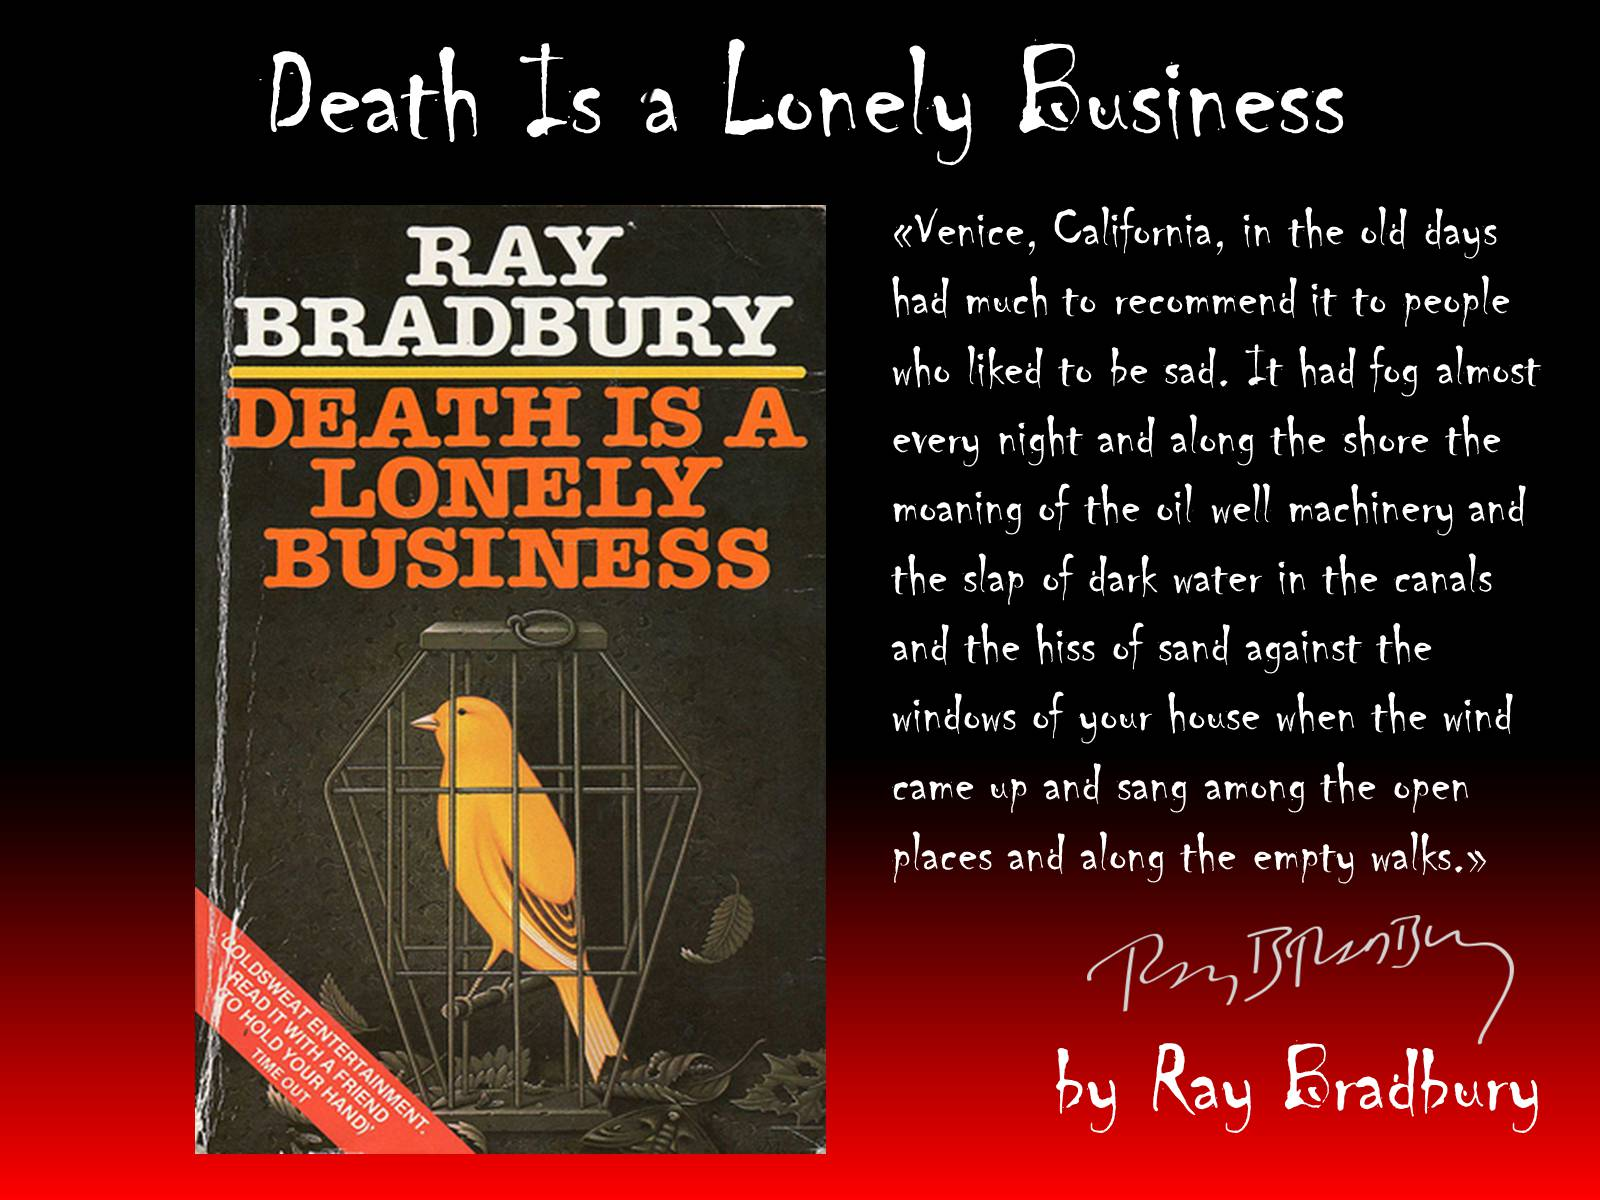 Презентація на тему «Death Is a Lonely Business»